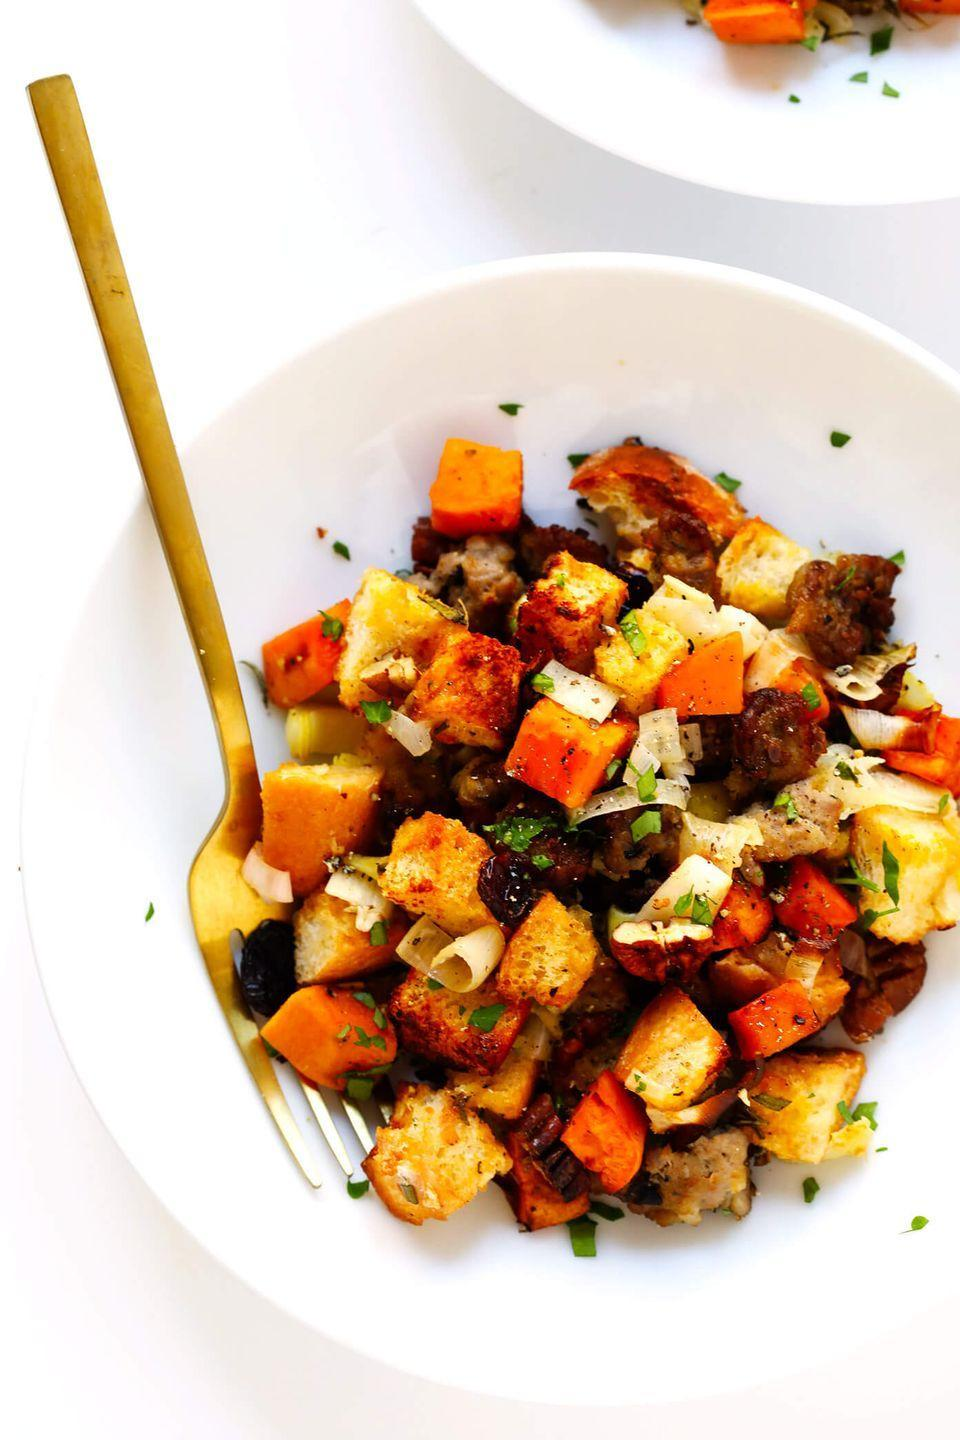 """<p>Don't you worry — there's still plenty of thick, crusty bread in here, along with sweet potatoes, pecans, cranberries, and veggies.</p><p>Get the recipe from <a href=""""https://www.gimmesomeoven.com/best-sausage-sweet-potato-thanksgiving-stuffing/"""" rel=""""nofollow noopener"""" target=""""_blank"""" data-ylk=""""slk:Gimme Some Oven"""" class=""""link rapid-noclick-resp"""">Gimme Some Oven</a>.</p>"""